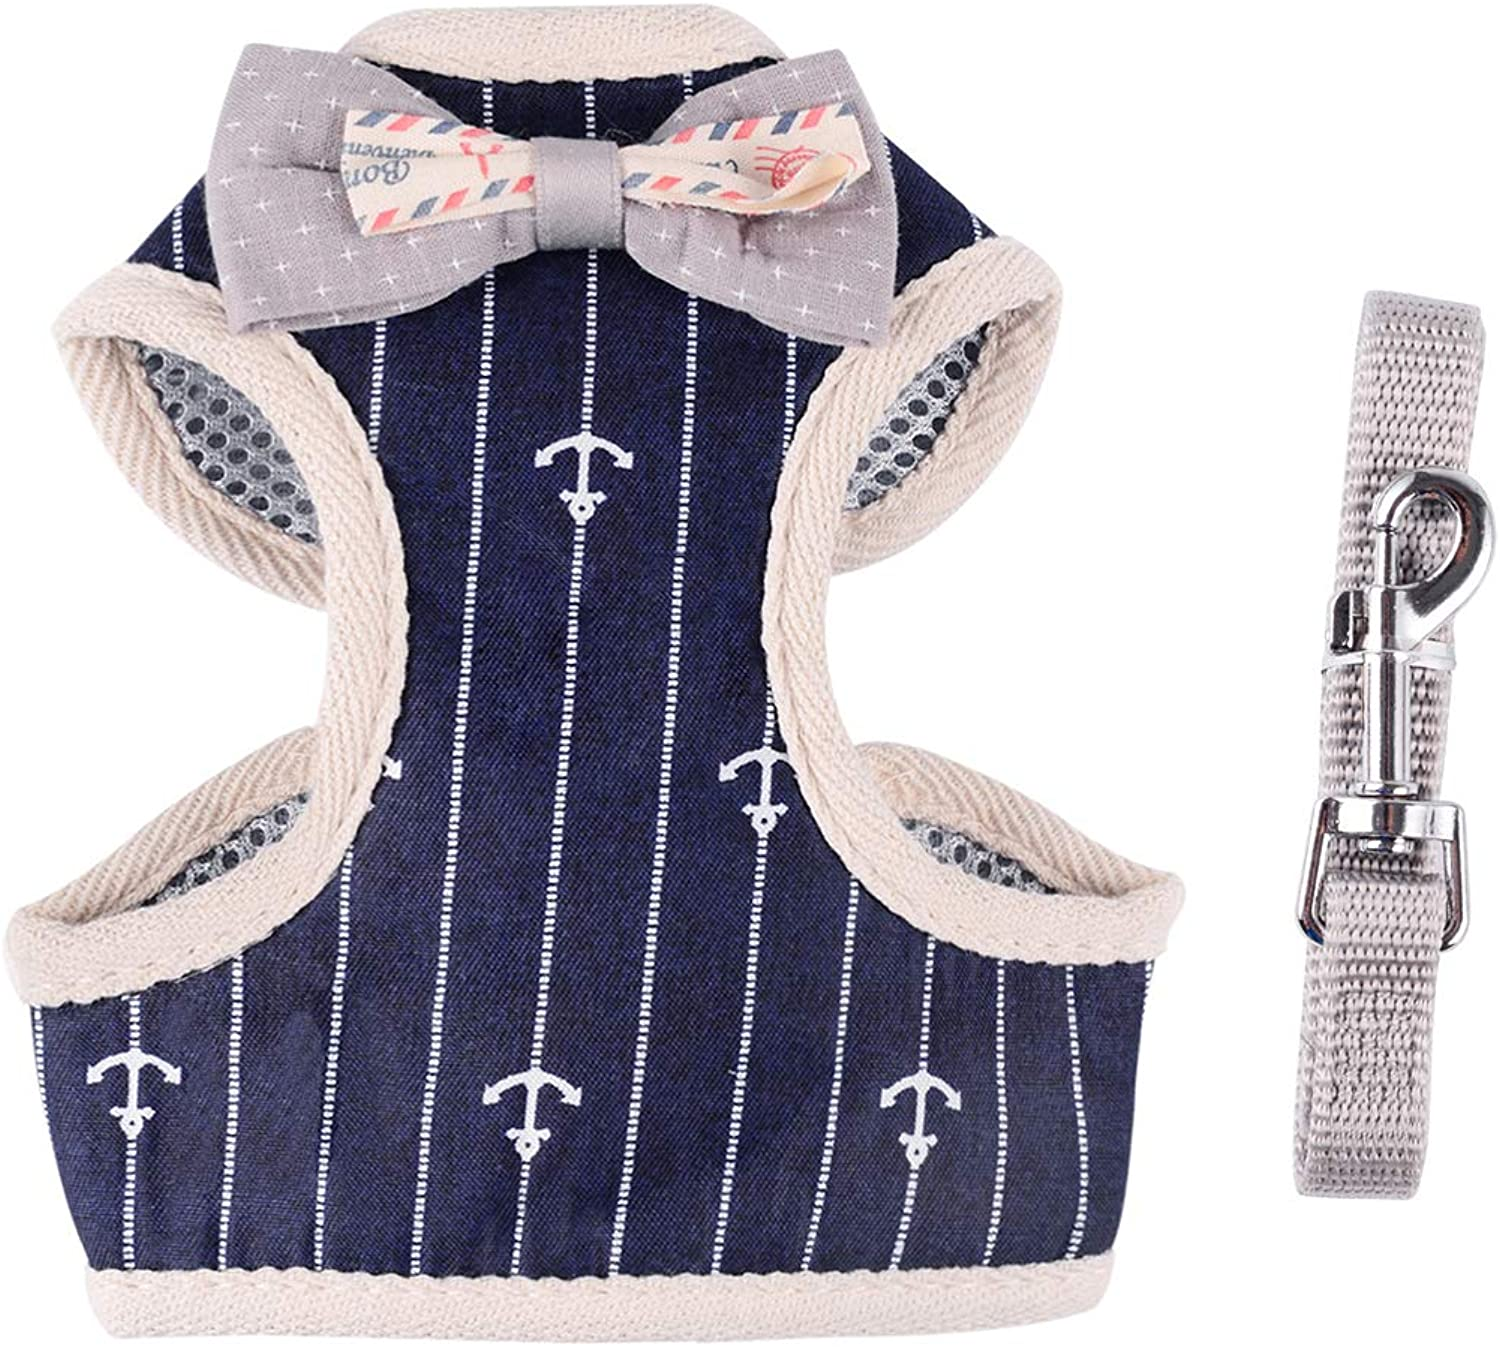 April Pets Comfortable Stylish Cotton Dog & Cat Harness Leash Set for Small Puppies and Cats (L, Navy Anchor)